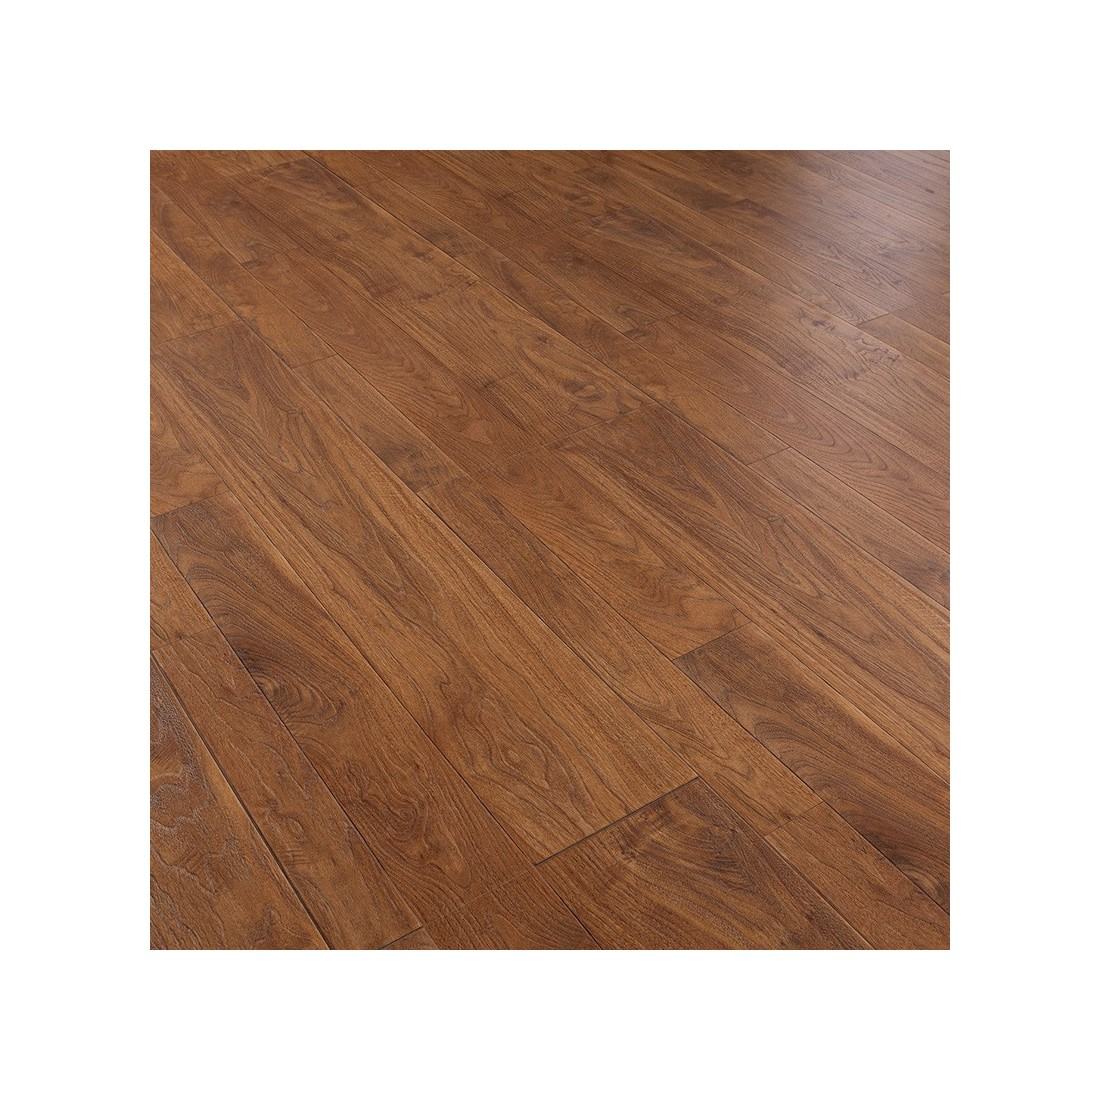 Faus elegance nogal amaretto servicolor for Suelos laminados kronoswiss